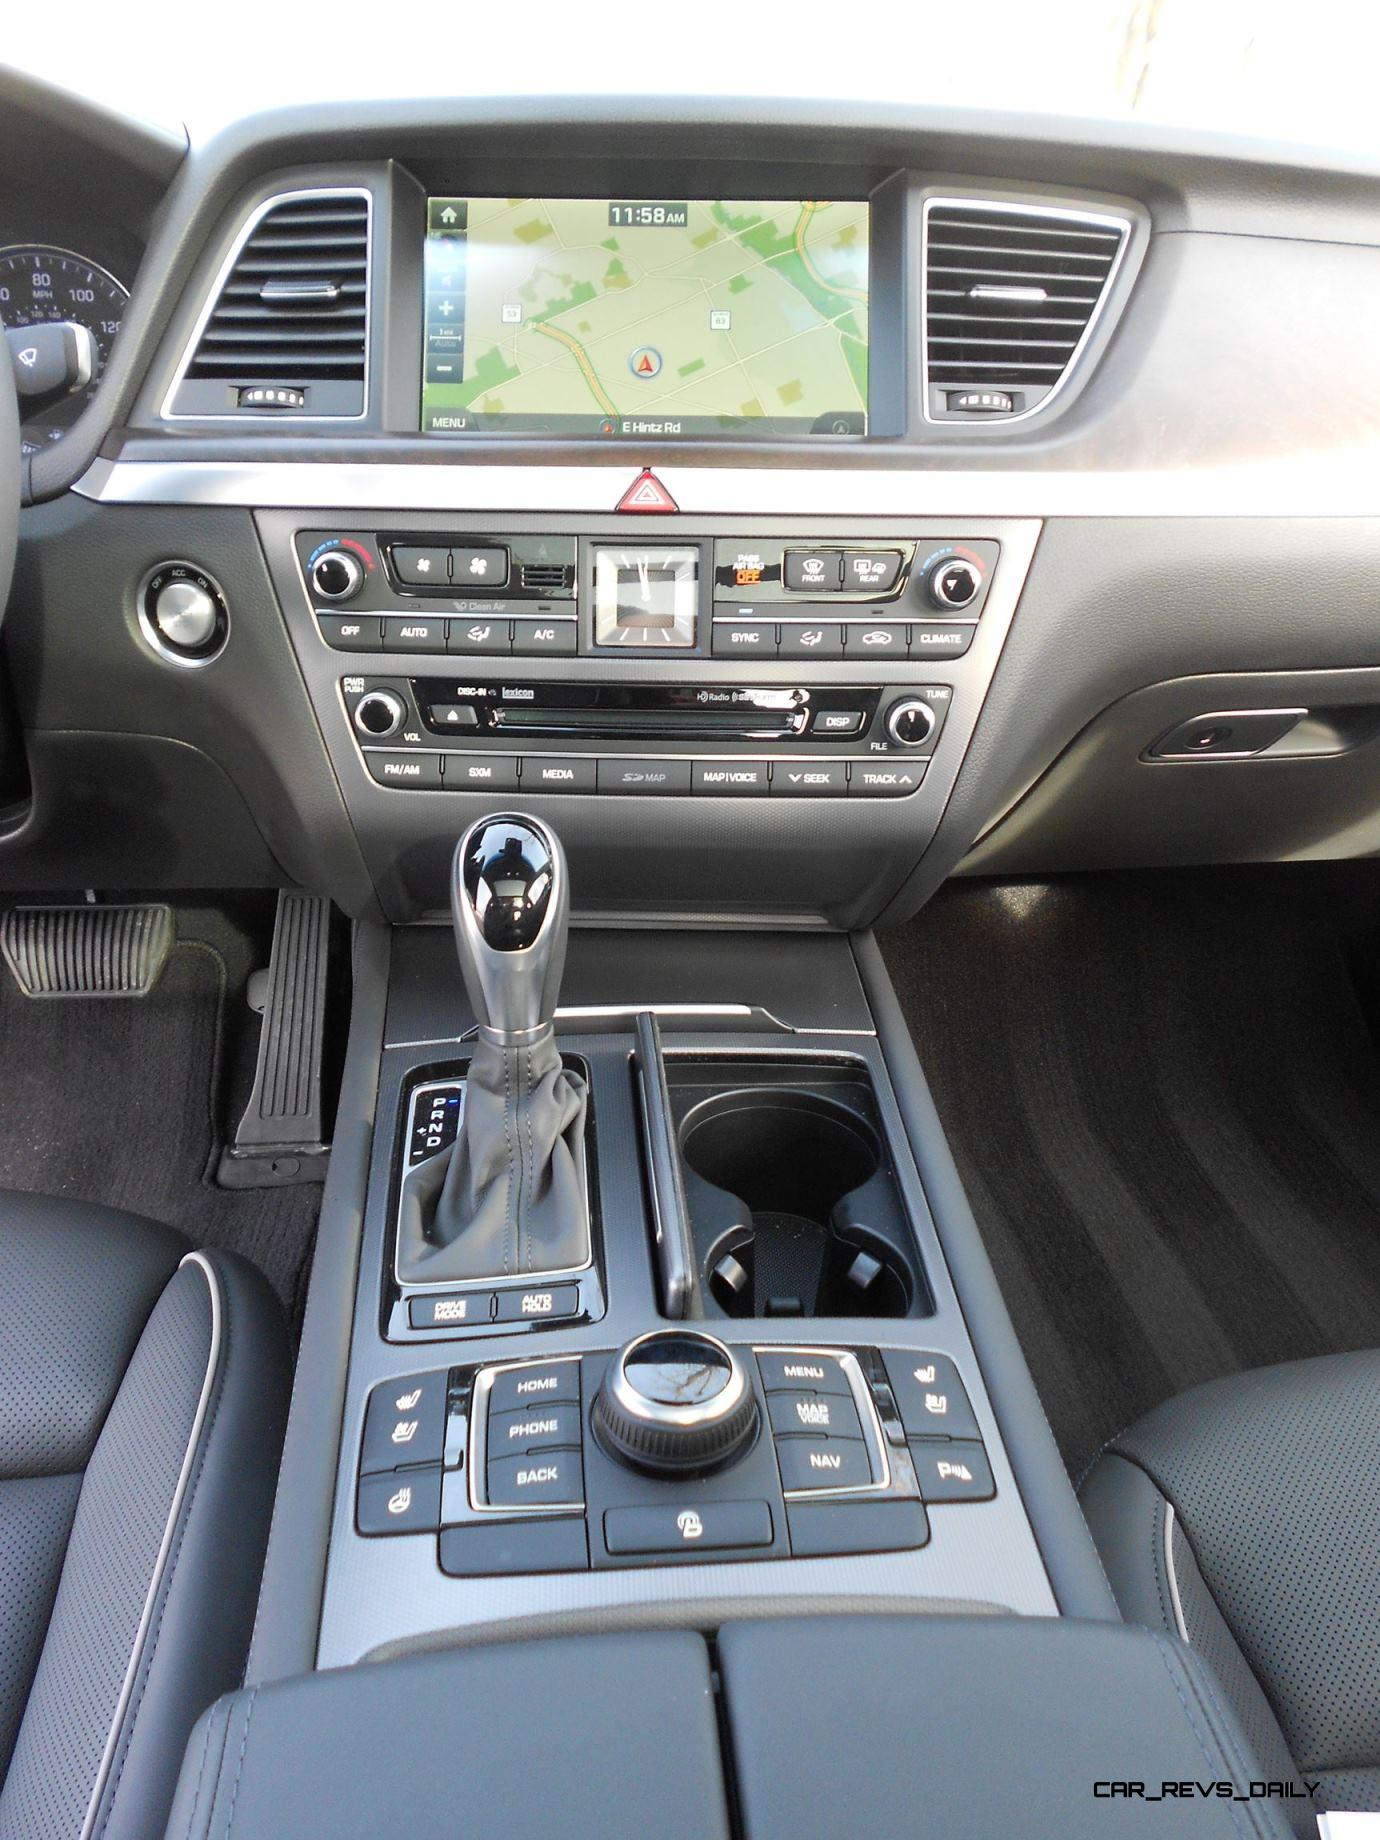 hight resolution of 2016 hyundai genesis awd 3 8 review interior 6